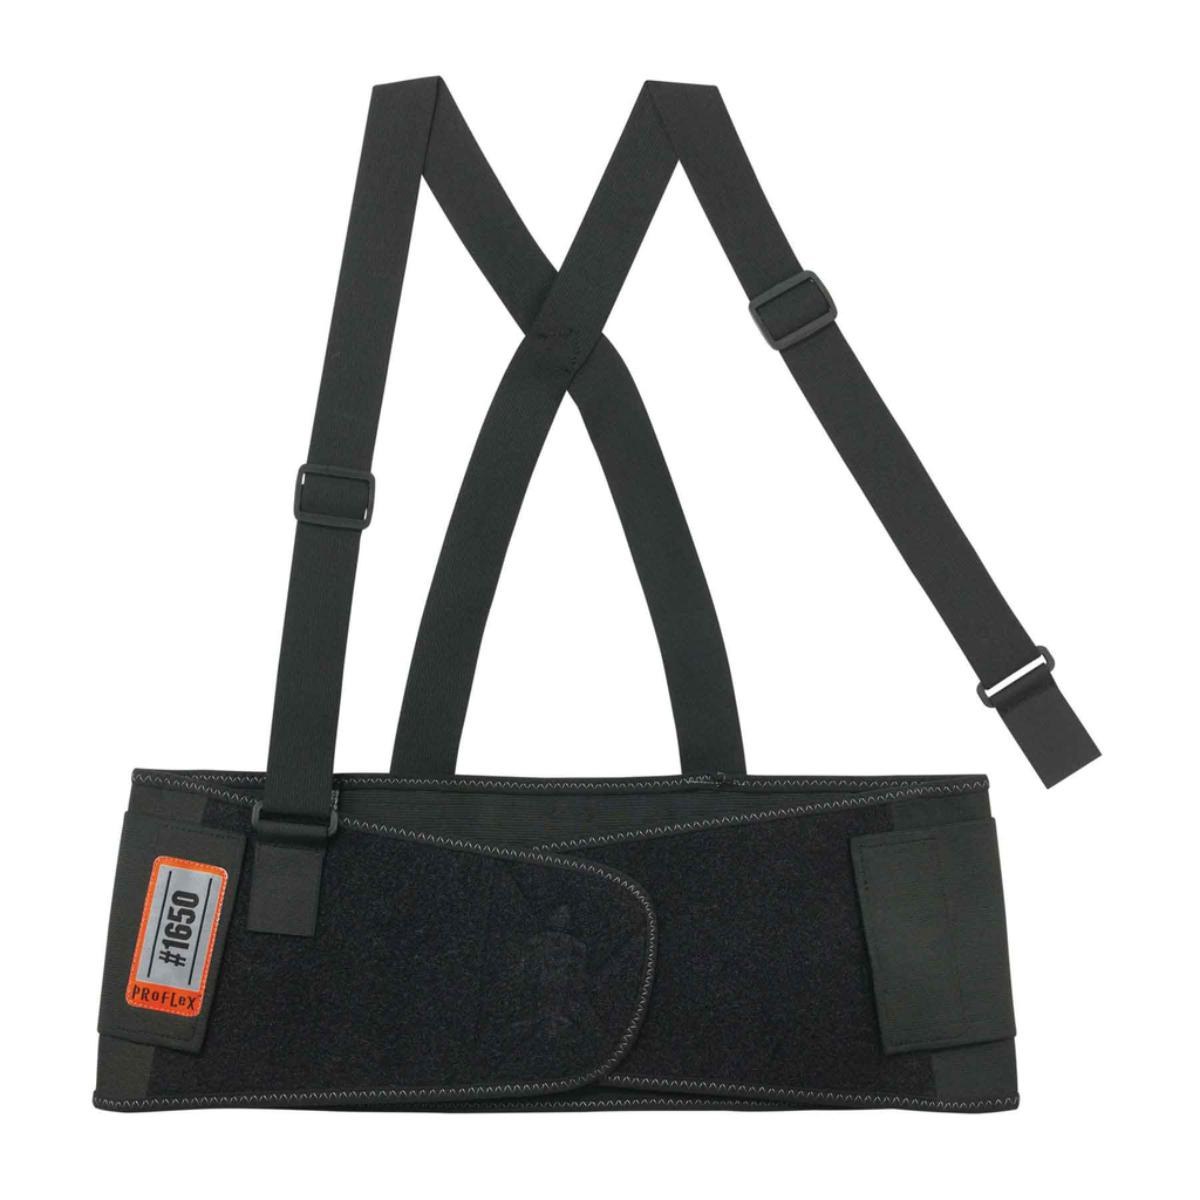 1650 2XL Black Economy Elastic Back Support